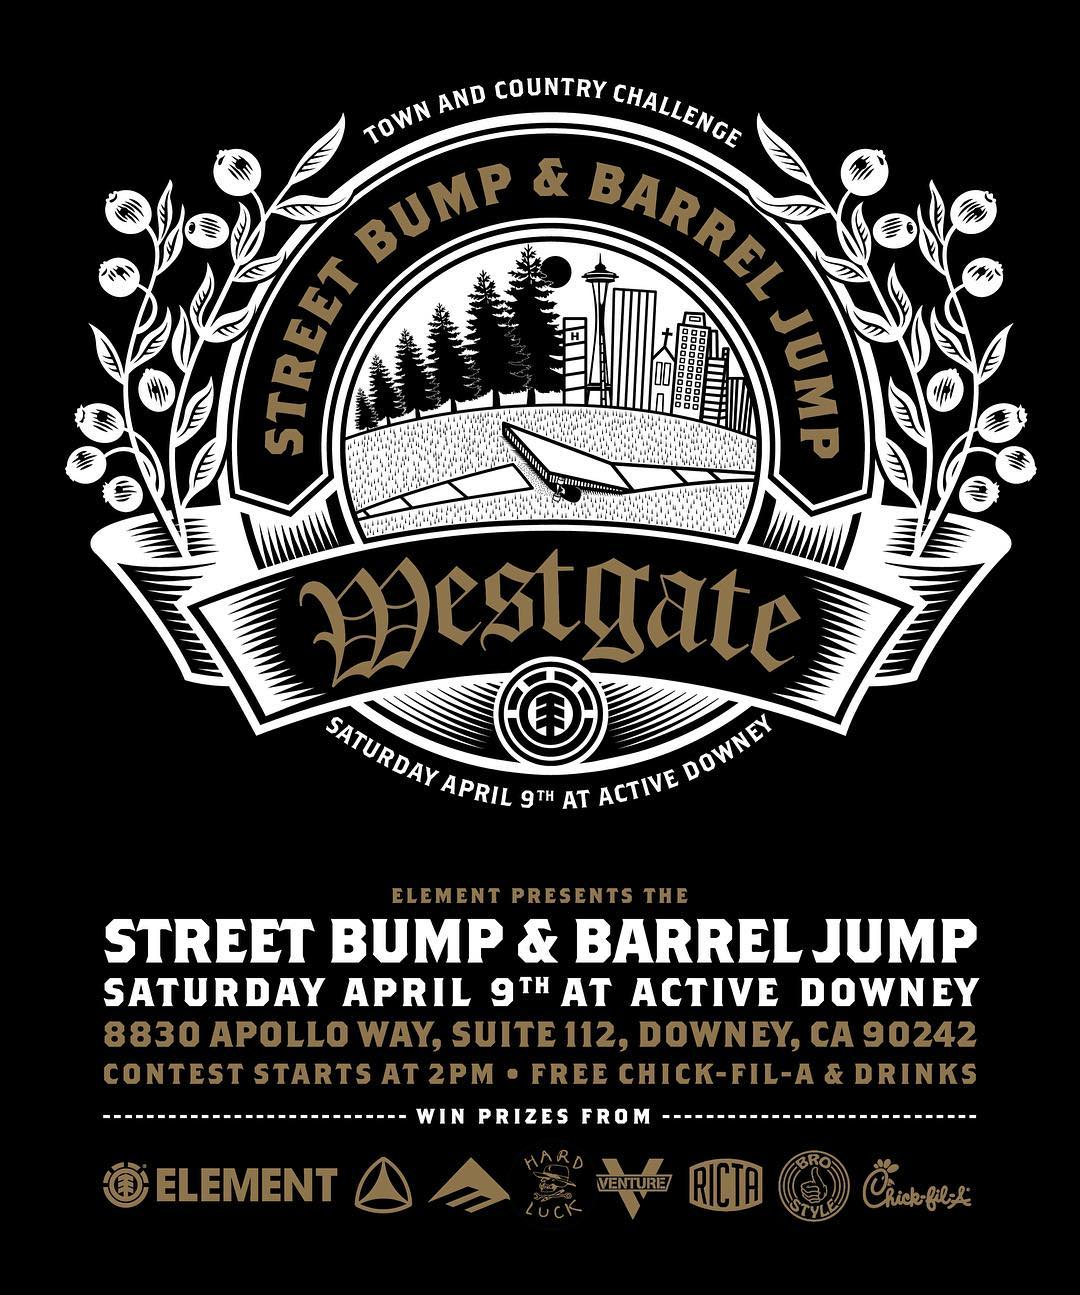 the @westgatebrandon #elementbarreljump continues this Saturday at @active.downey >>> free food, drinks, and win prizes from @emerica @hardluckmfg @berrics @venturetrucks @rictawheels @brostyle